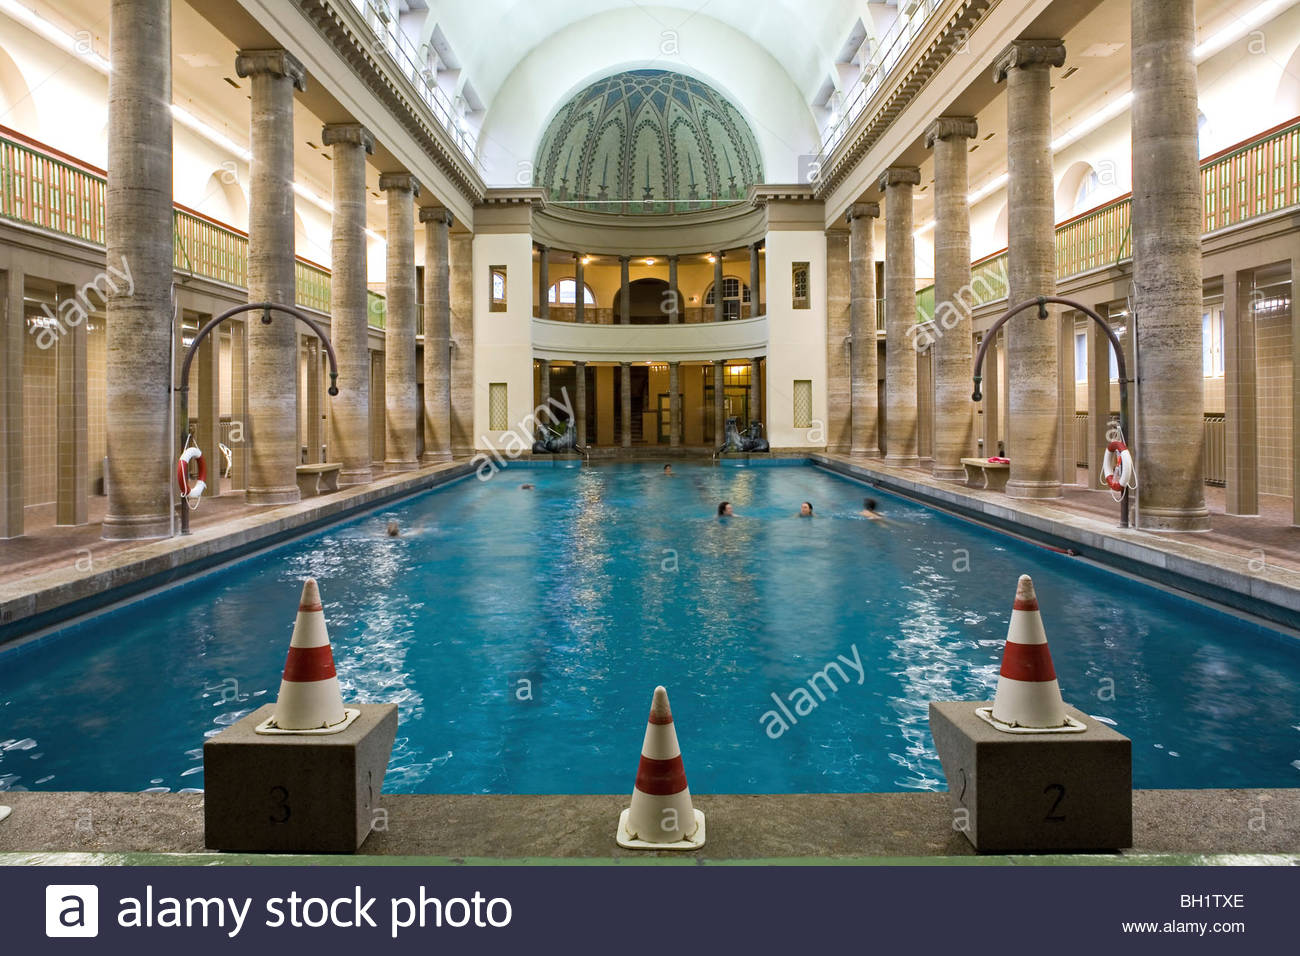 stadtbad neukoelln opened in 1914 roman style baths berlin stock photo 27701030 alamy. Black Bedroom Furniture Sets. Home Design Ideas